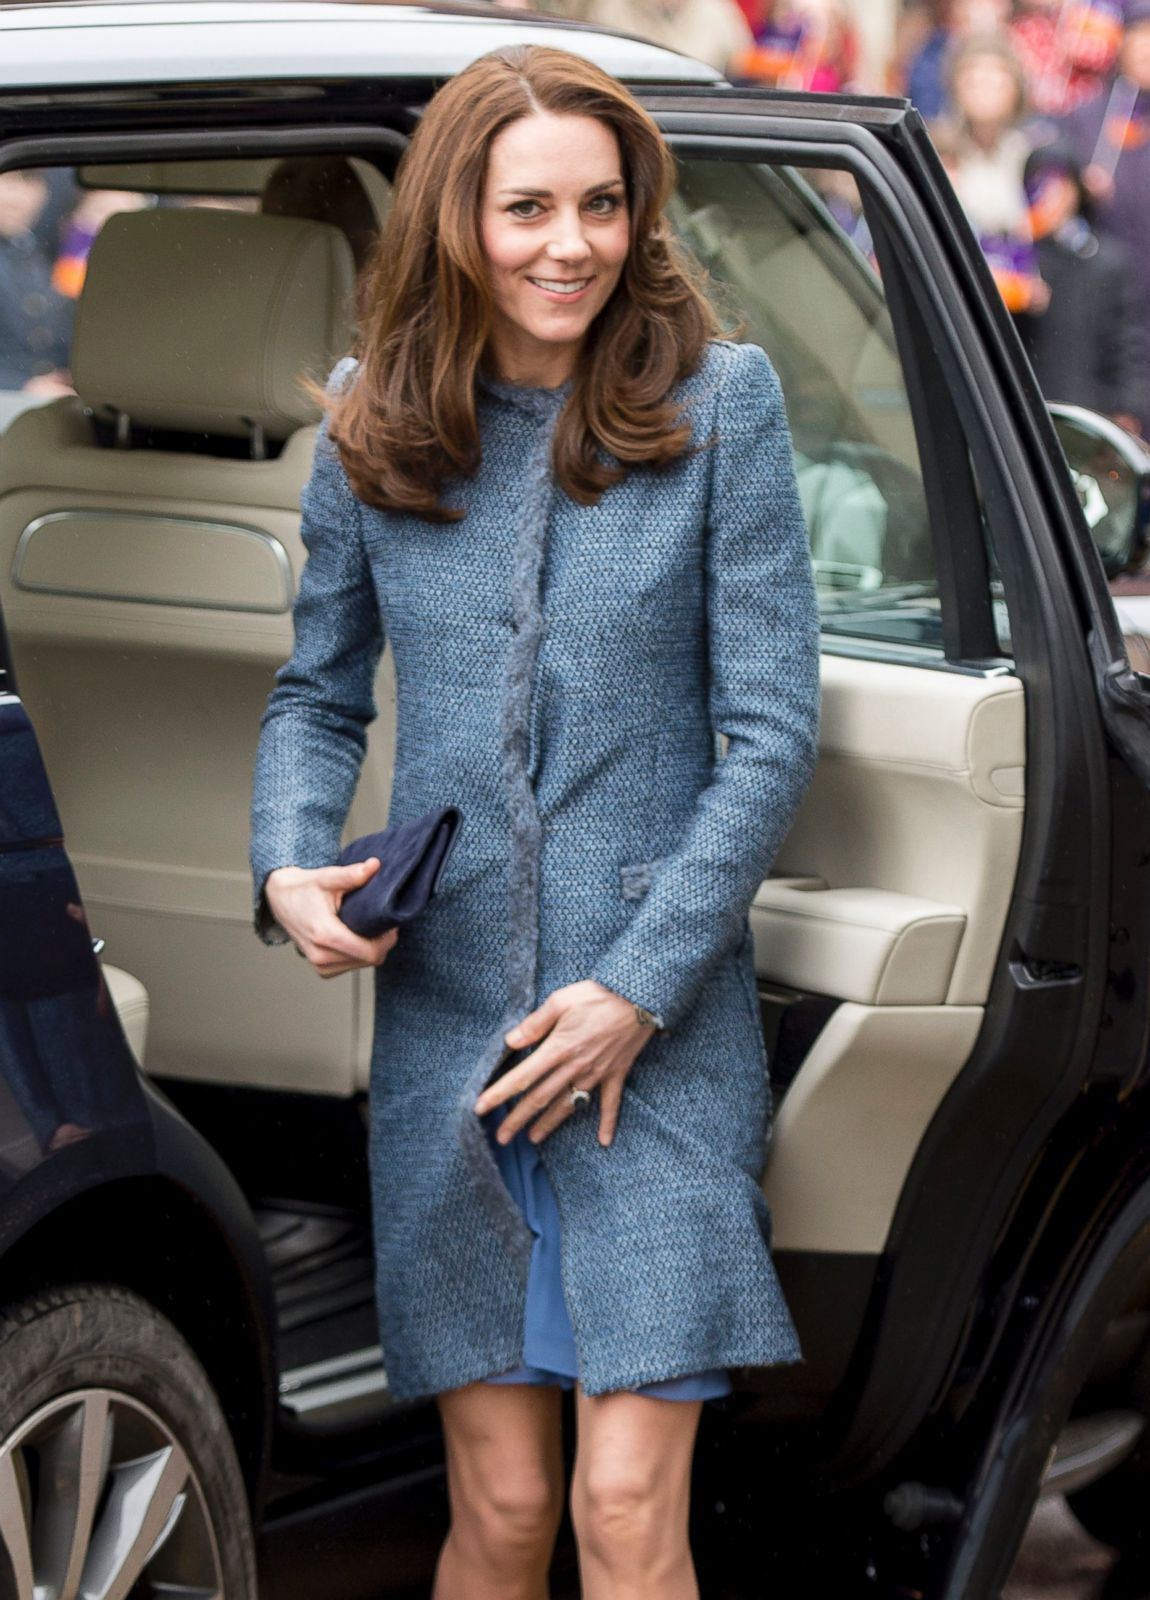 The life and times of Duchess Kate Photos - ABC News